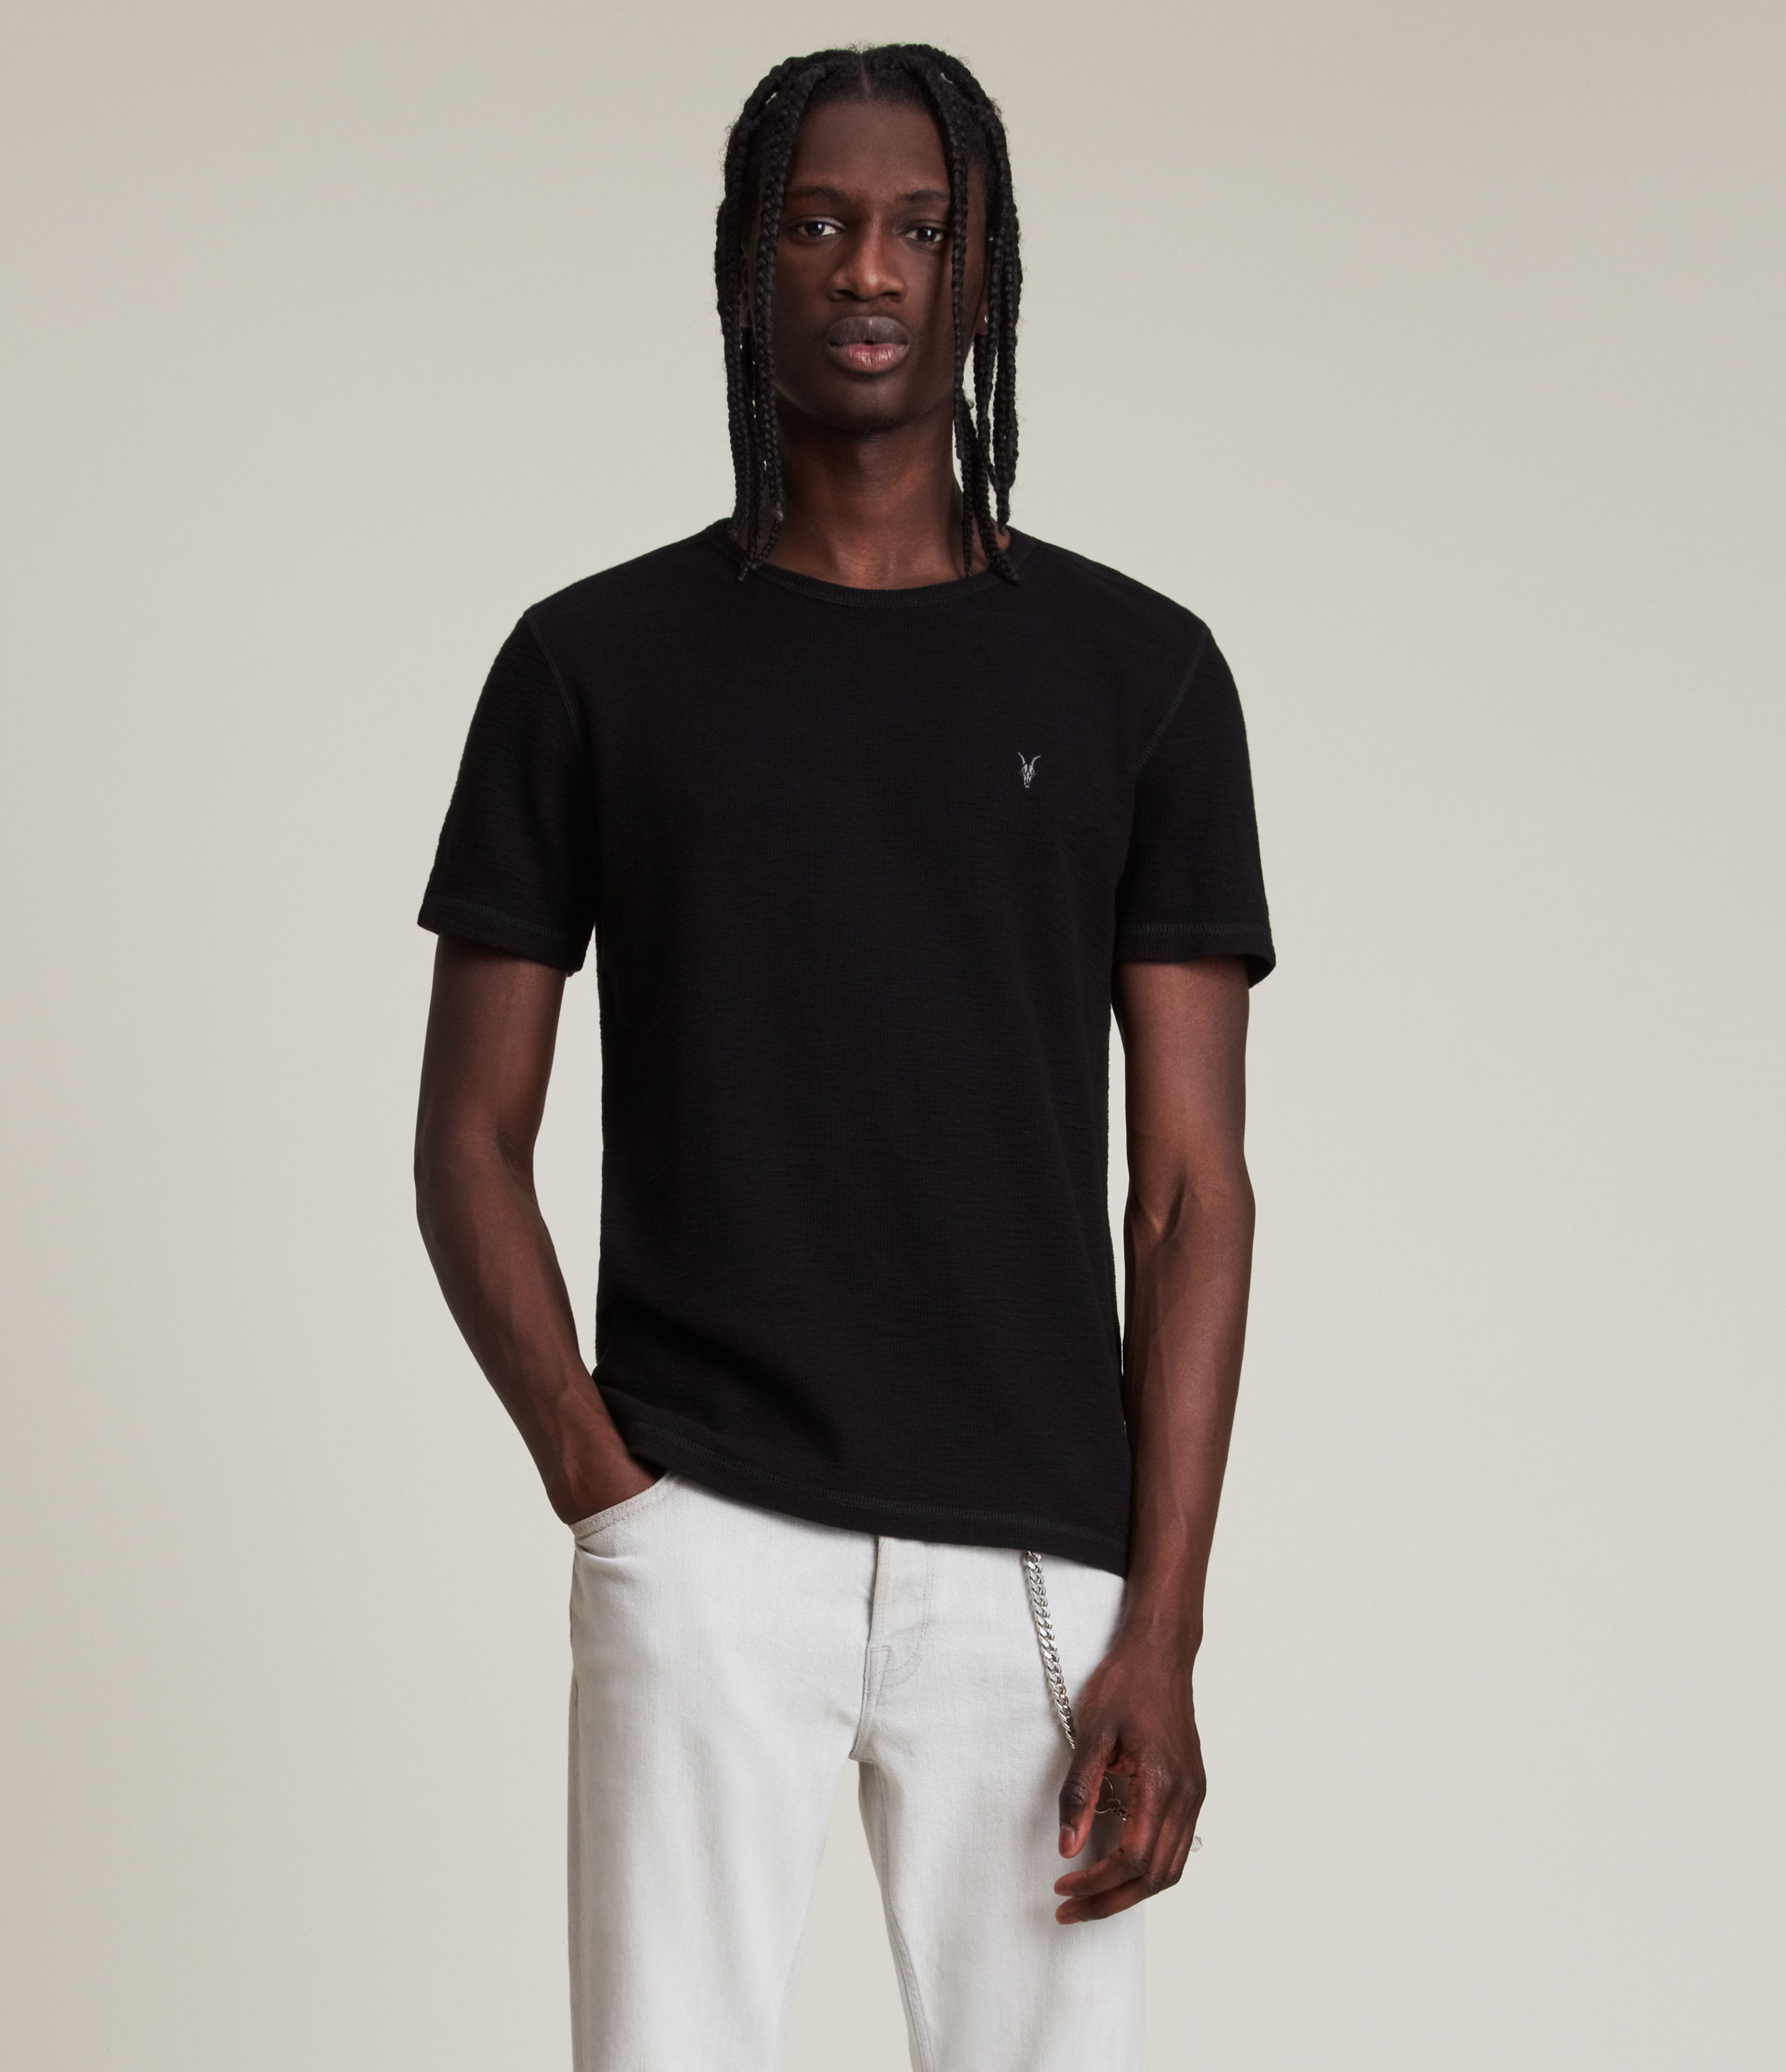 AllSaints Men's Cotton Regular Fit Muse Short Sleeve Crew T-Shirt, Black, Size: XS